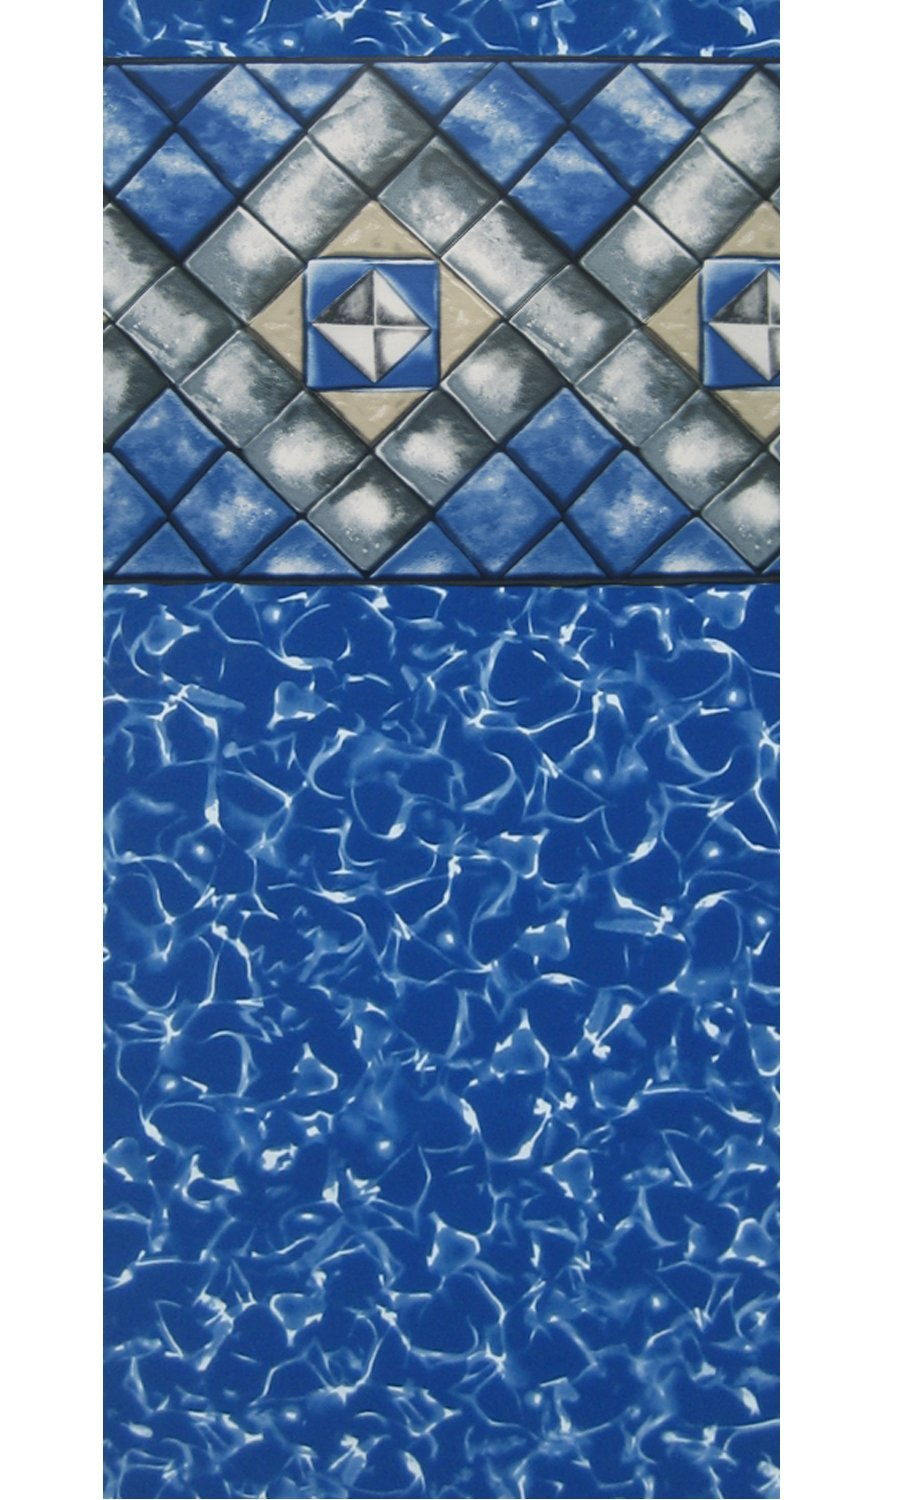 Smartline 18-Foot-by-33-Foot-by-48-Inch Oval 25 Gauge Manor Esther Williams Above-Ground Beaded Swimming Pool Liner 25 Gauge